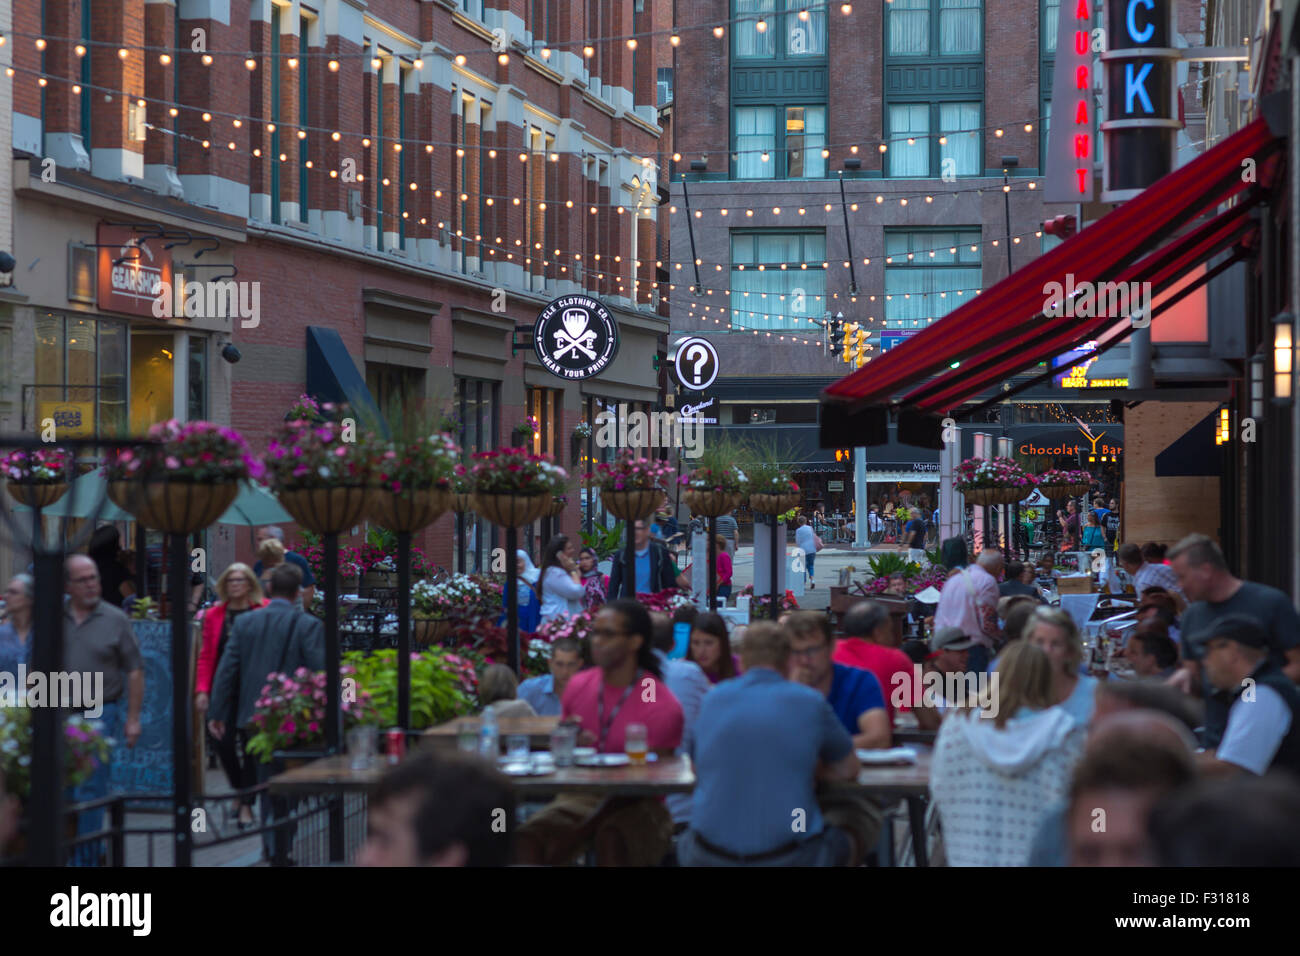 OUTDOOR RESTAURANTS EAST FOURTH STREET DOWNTOWN CLEVELAND OHIO USA - Stock Image